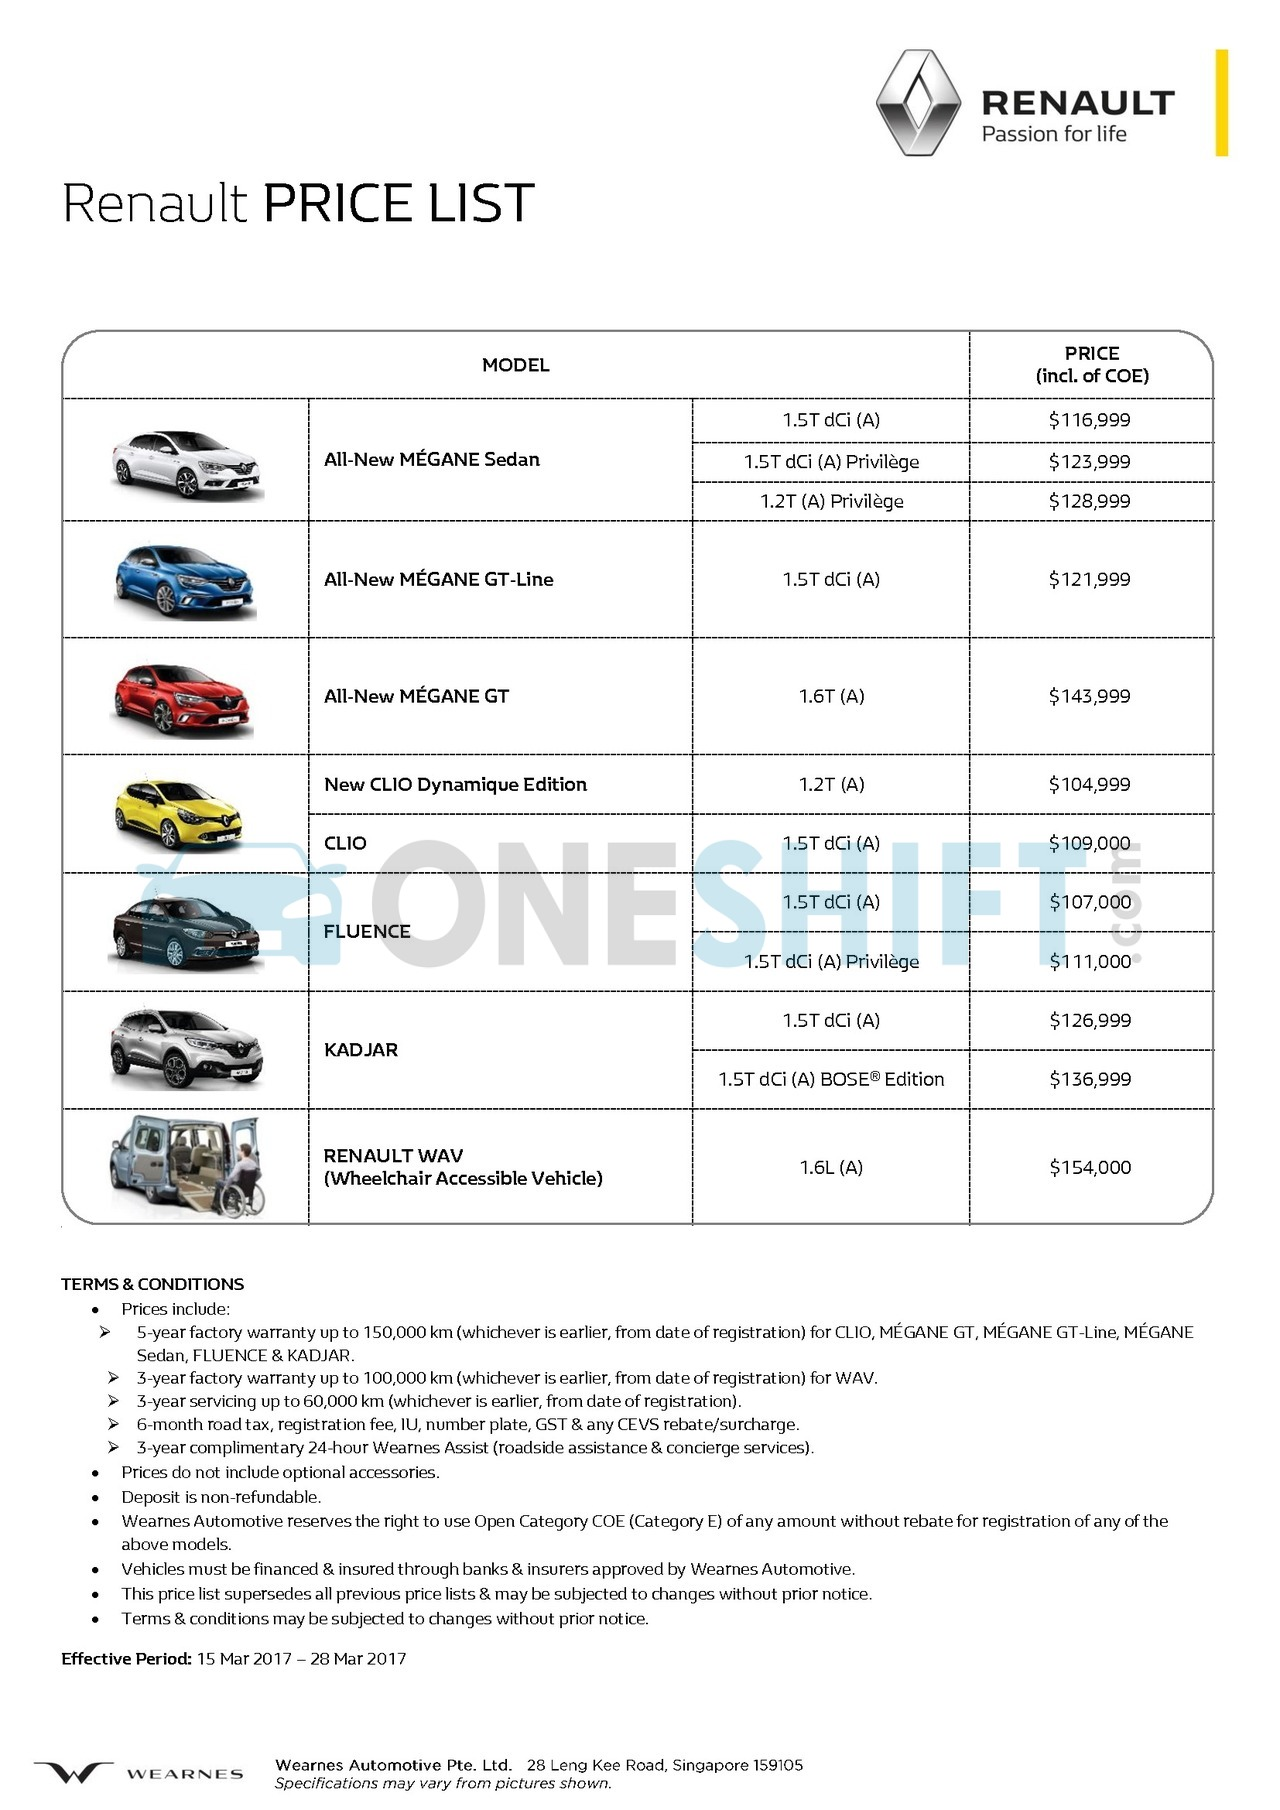 renault Price List 3-16-2017 Page 1